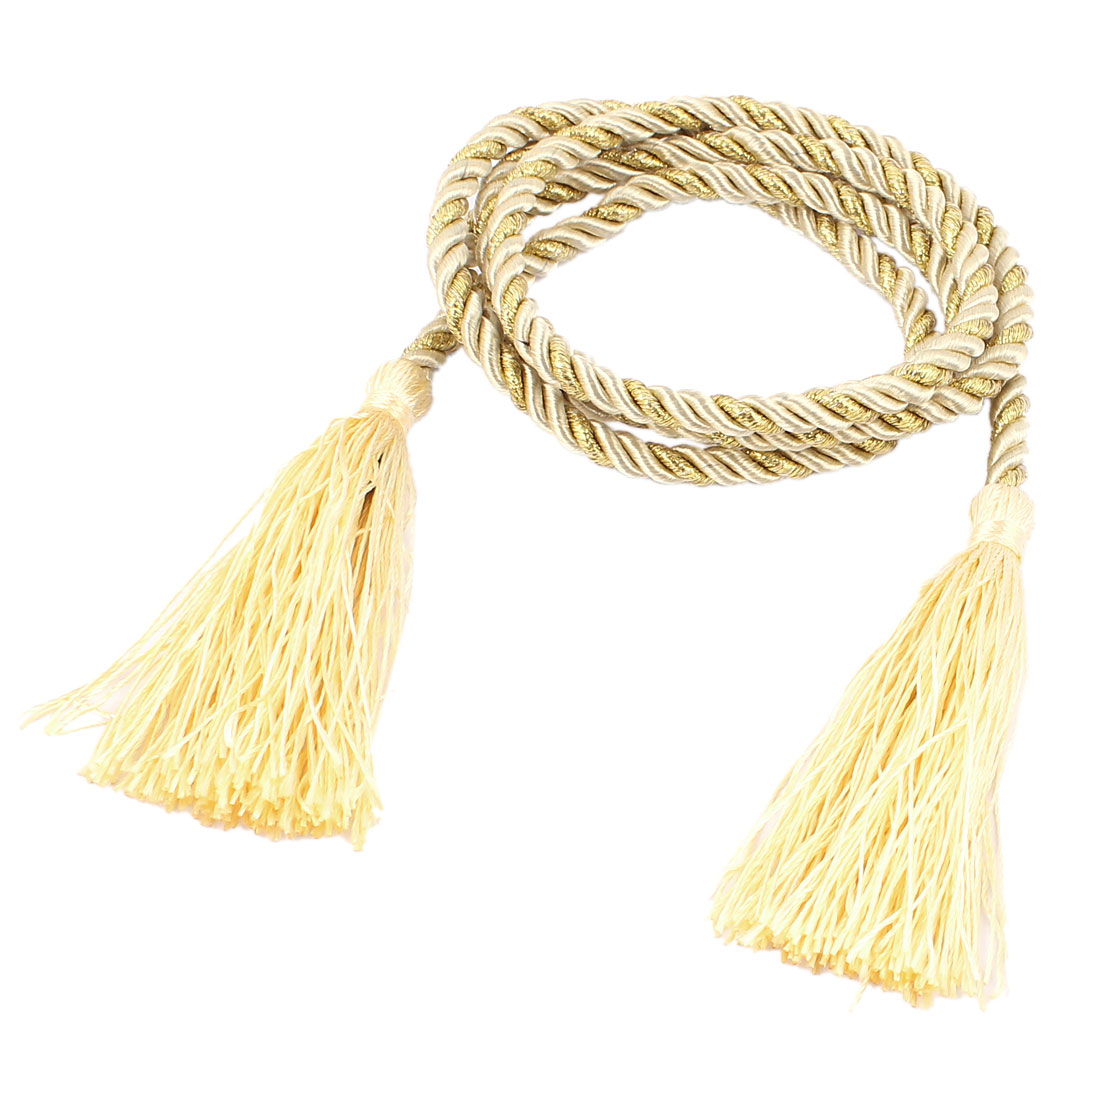 Window Curtain Tieback Tie Back Tassels Trim Rope Cord String 133cm Yellow